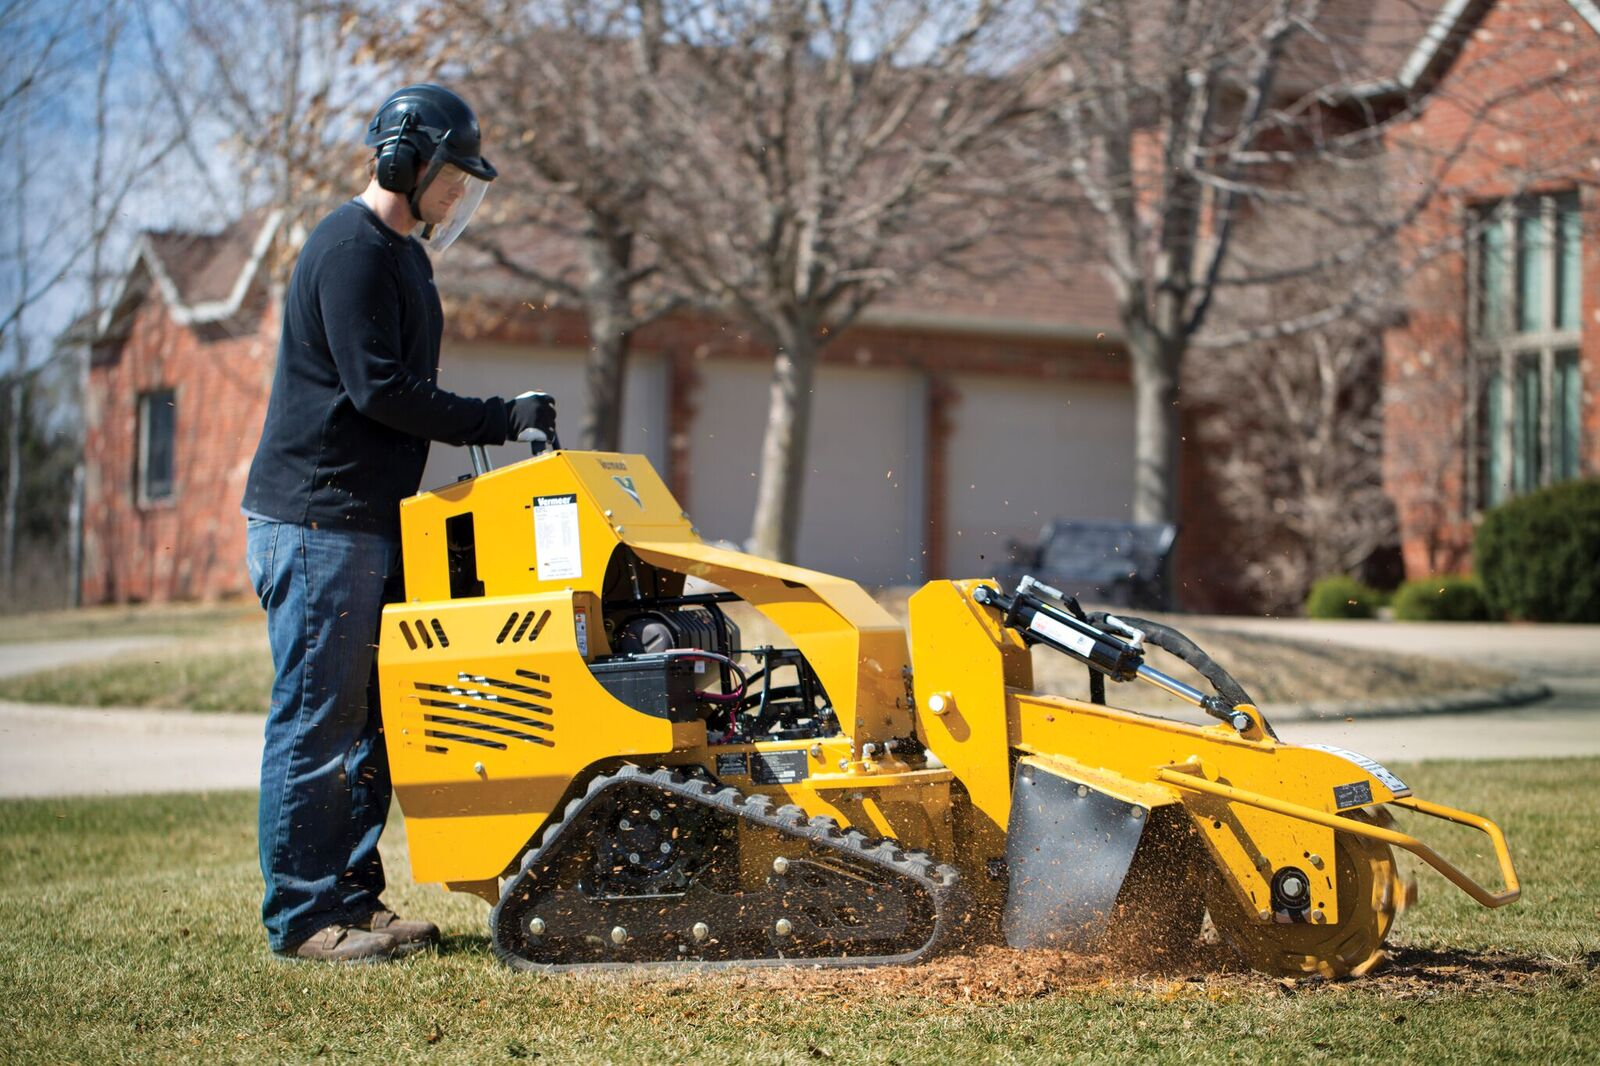 Bowers Hill-Norfolk Tree Trimming and Stump Grinding Services-We Offer Tree Trimming Services, Tree Removal, Tree Pruning, Tree Cutting, Residential and Commercial Tree Trimming Services, Storm Damage, Emergency Tree Removal, Land Clearing, Tree Companies, Tree Care Service, Stump Grinding, and we're the Best Tree Trimming Company Near You Guaranteed!